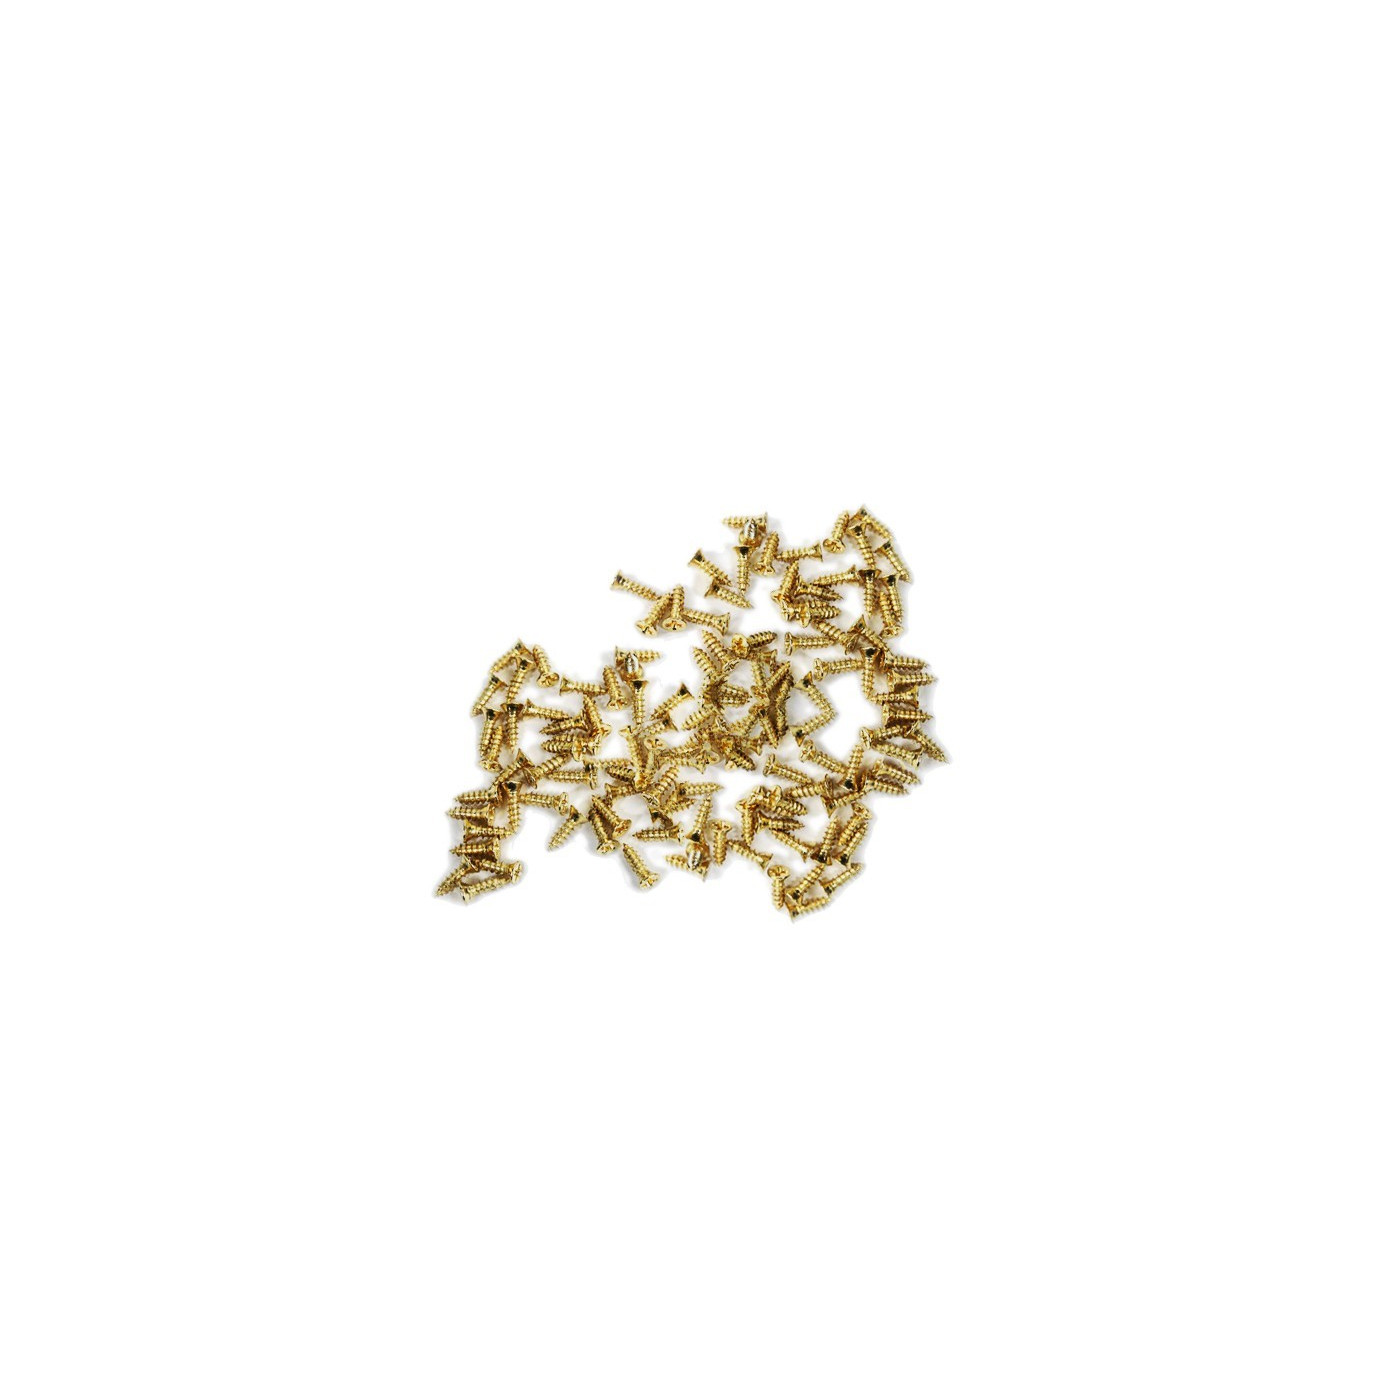 Set of 300 mini screws (2.0x10 mm, countersunk, gold color)  - 1